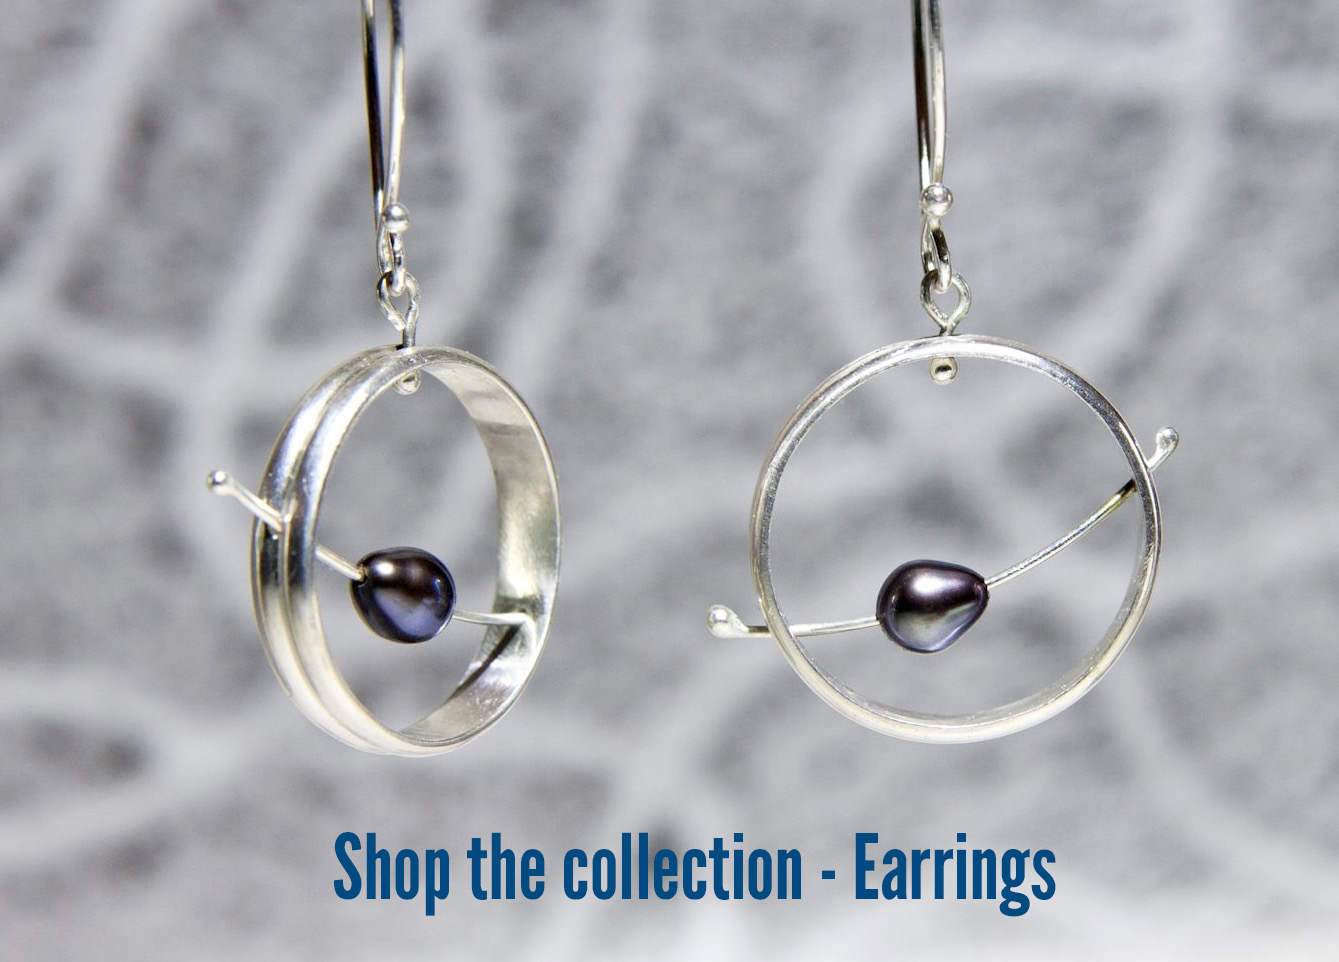 2-Silver-Pearl-Spinner-Earrings-Dana-Reed-category-image.jpg